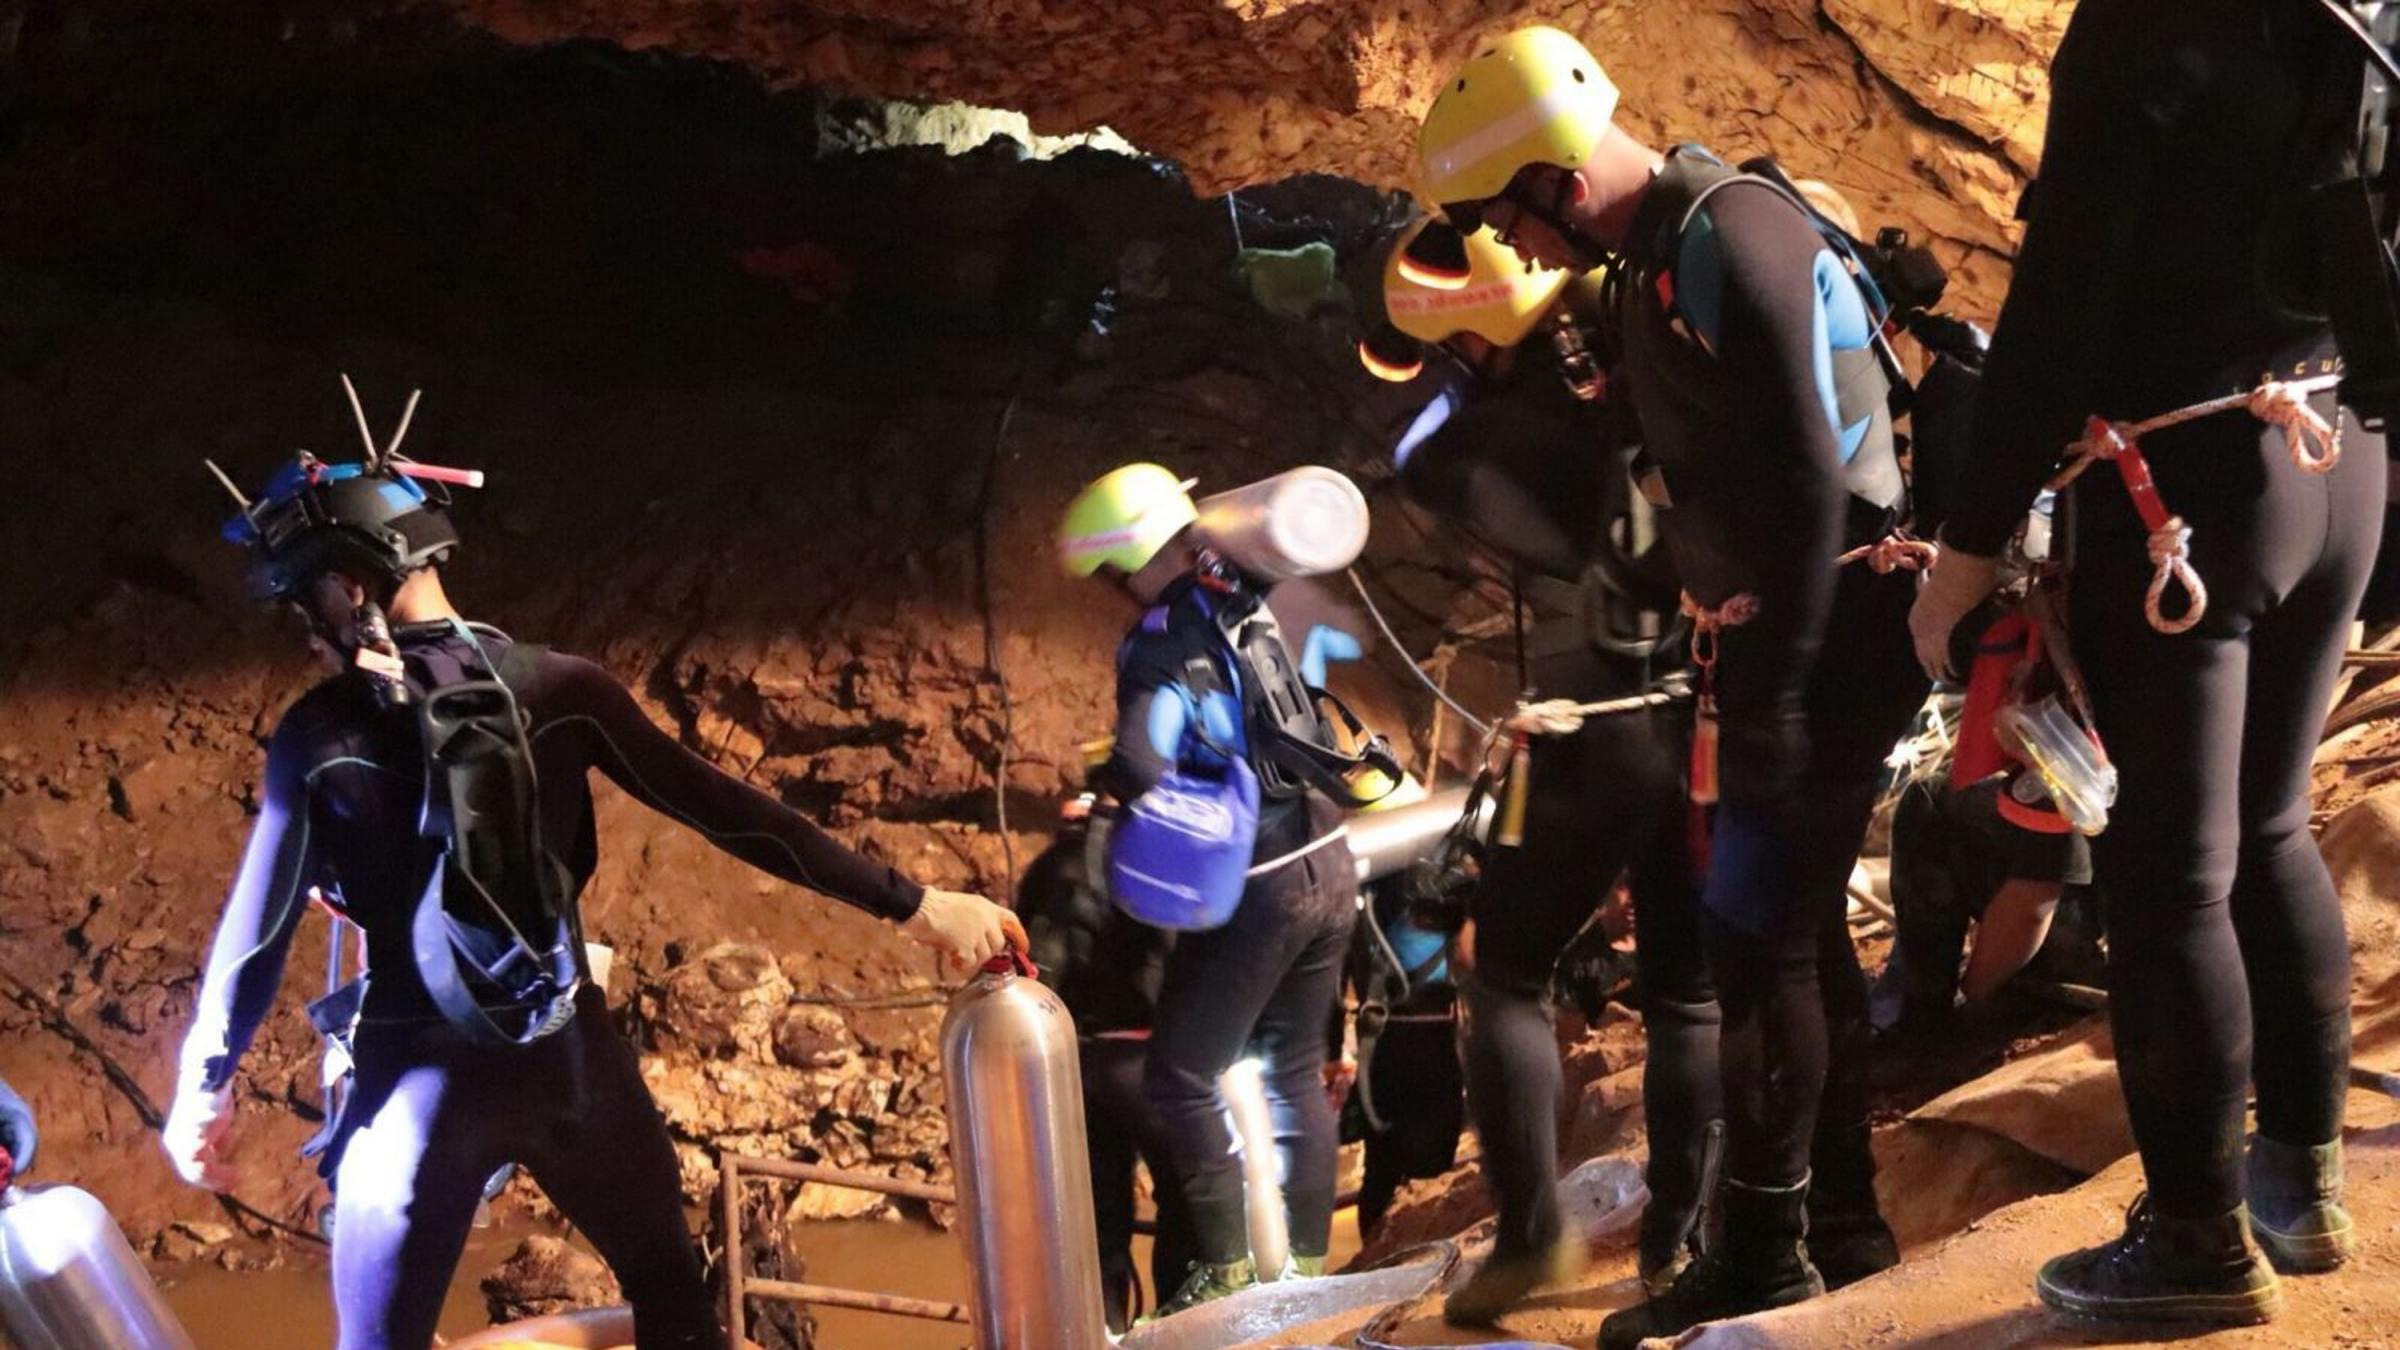 WATCH: Thai caves latest - Ambulance leaves complex as rescue bid resumes